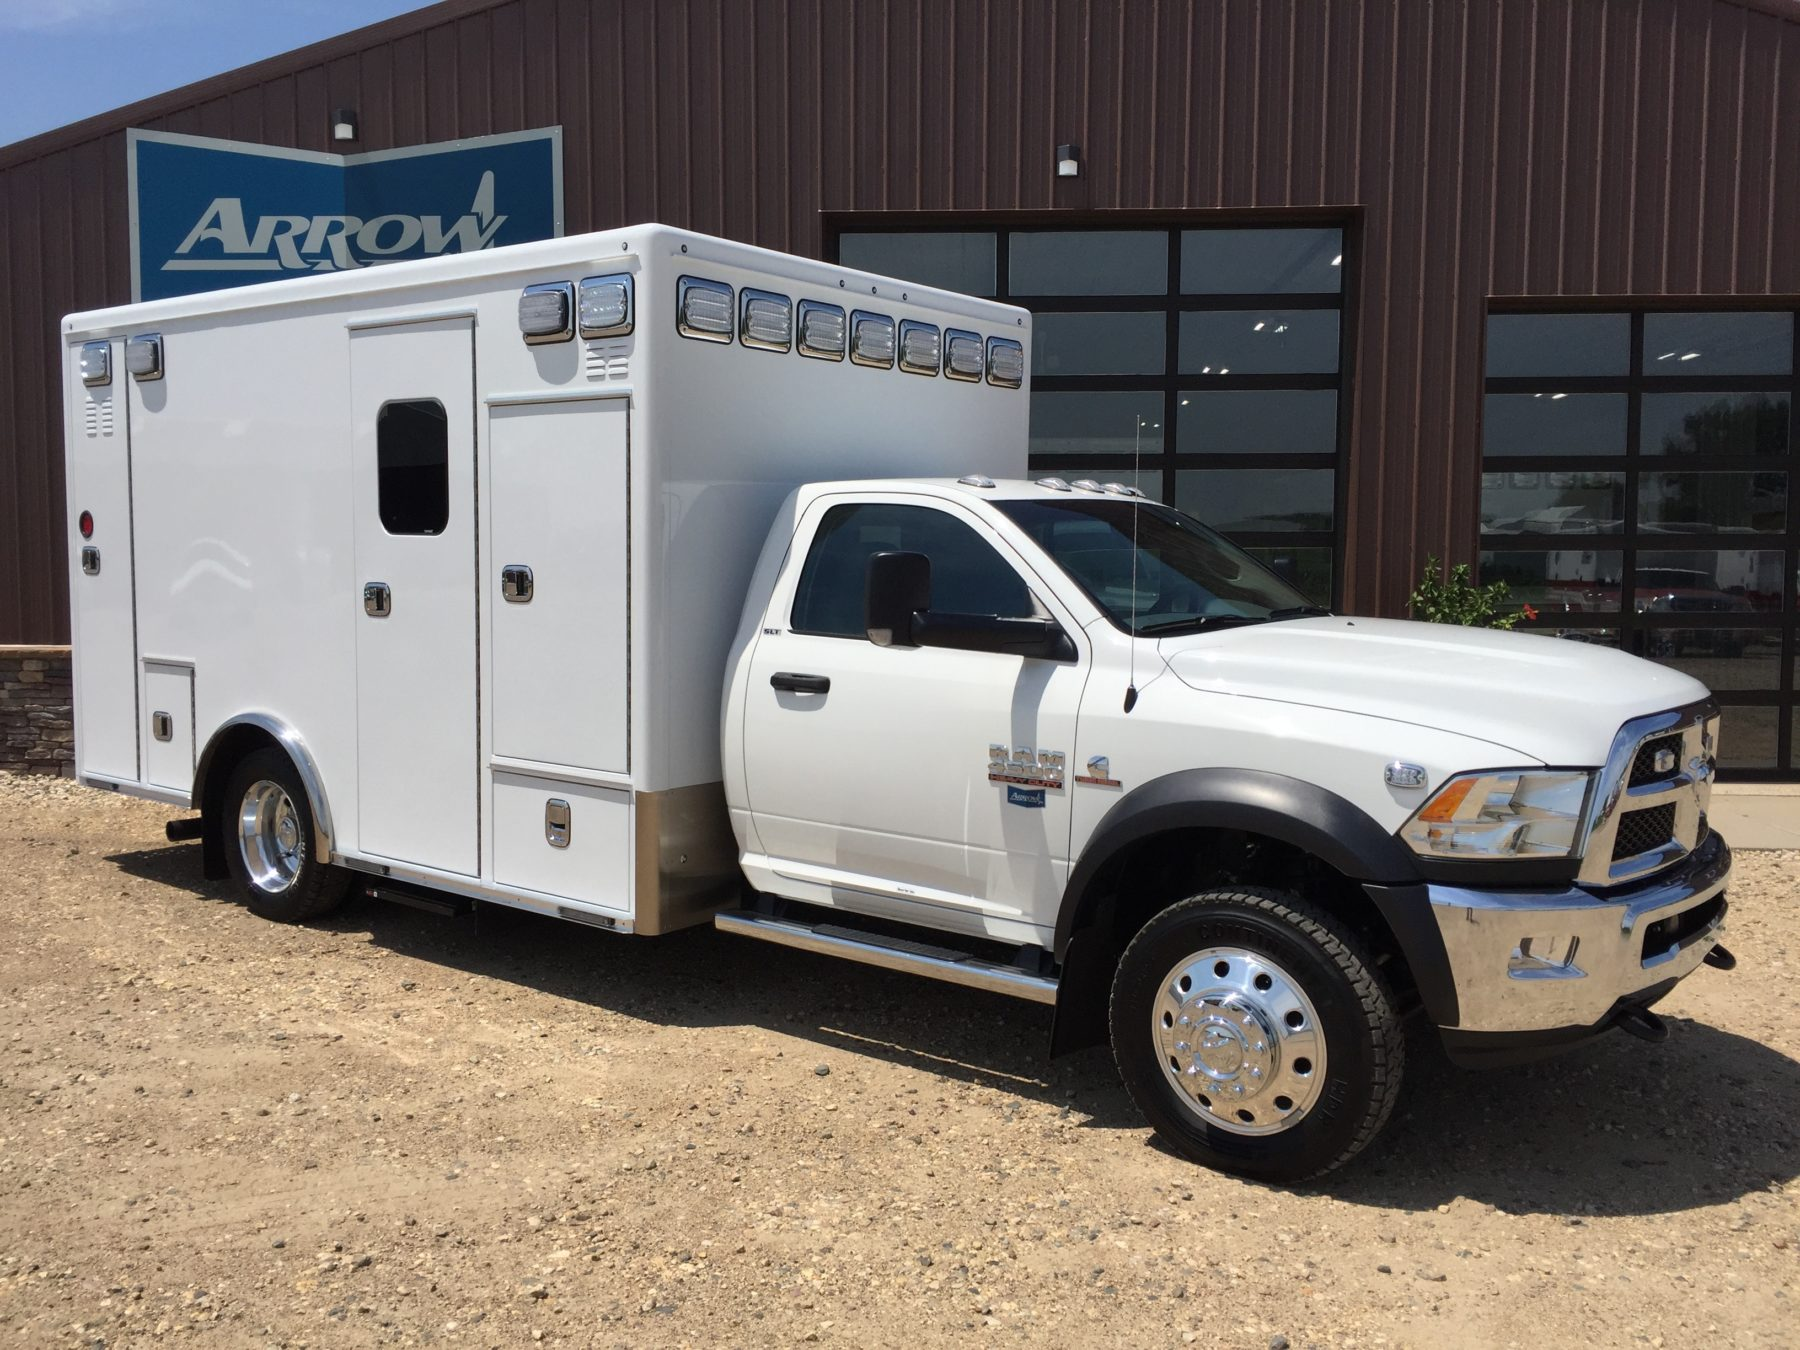 2017 Ram 4500 4x4 Heavy Duty Ambulance For Sale – Picture 3